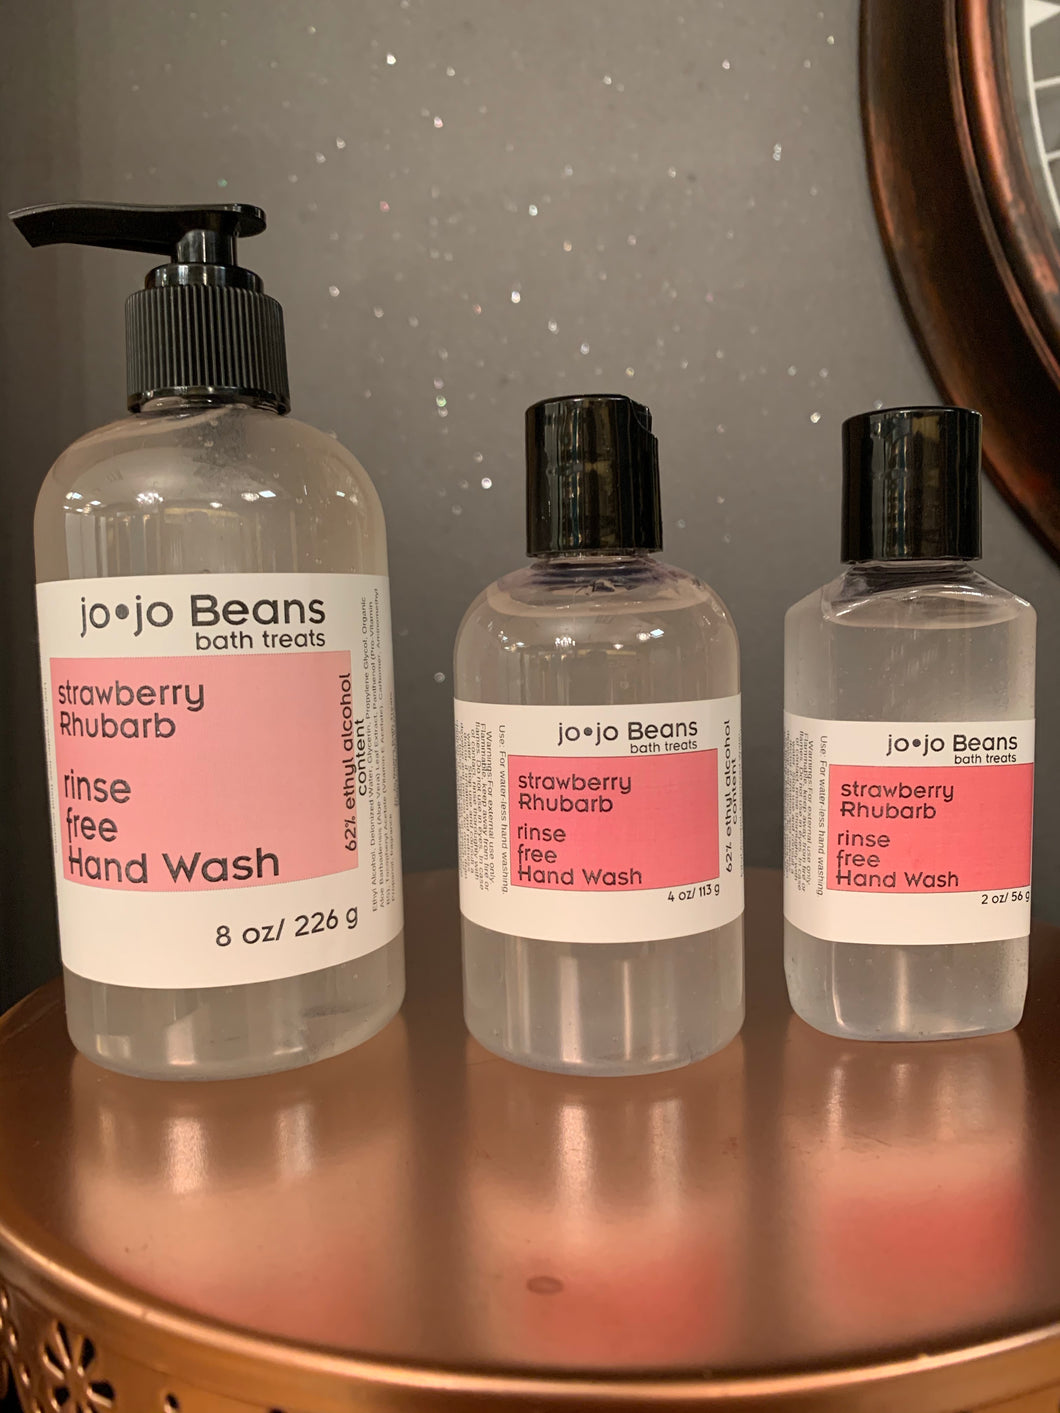 Strawberry Rhubarb - Rinse Free Hand Wash (Hand Sanitizer)